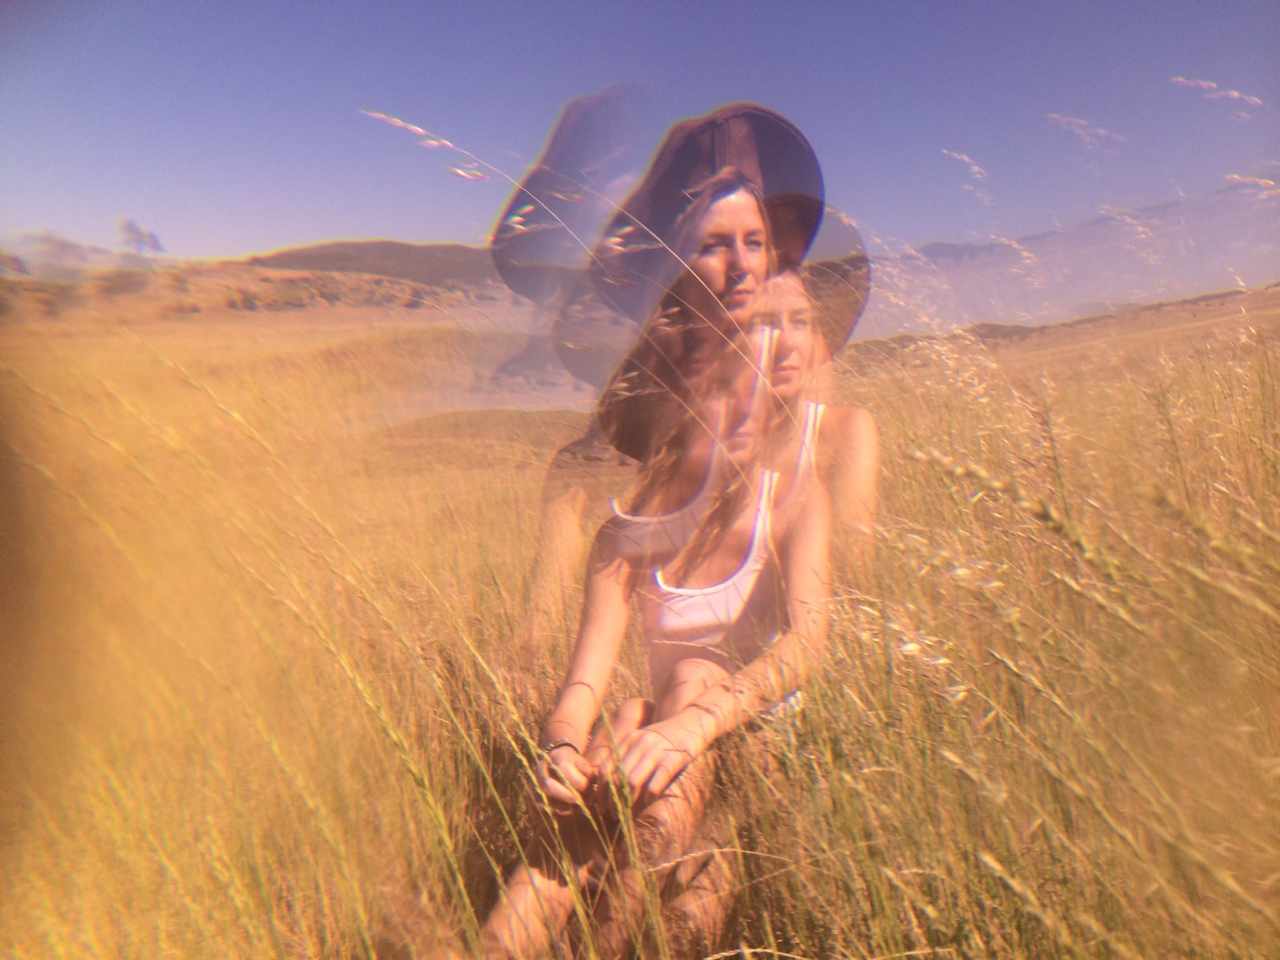 Dana Trippe - photographer based in San Diego